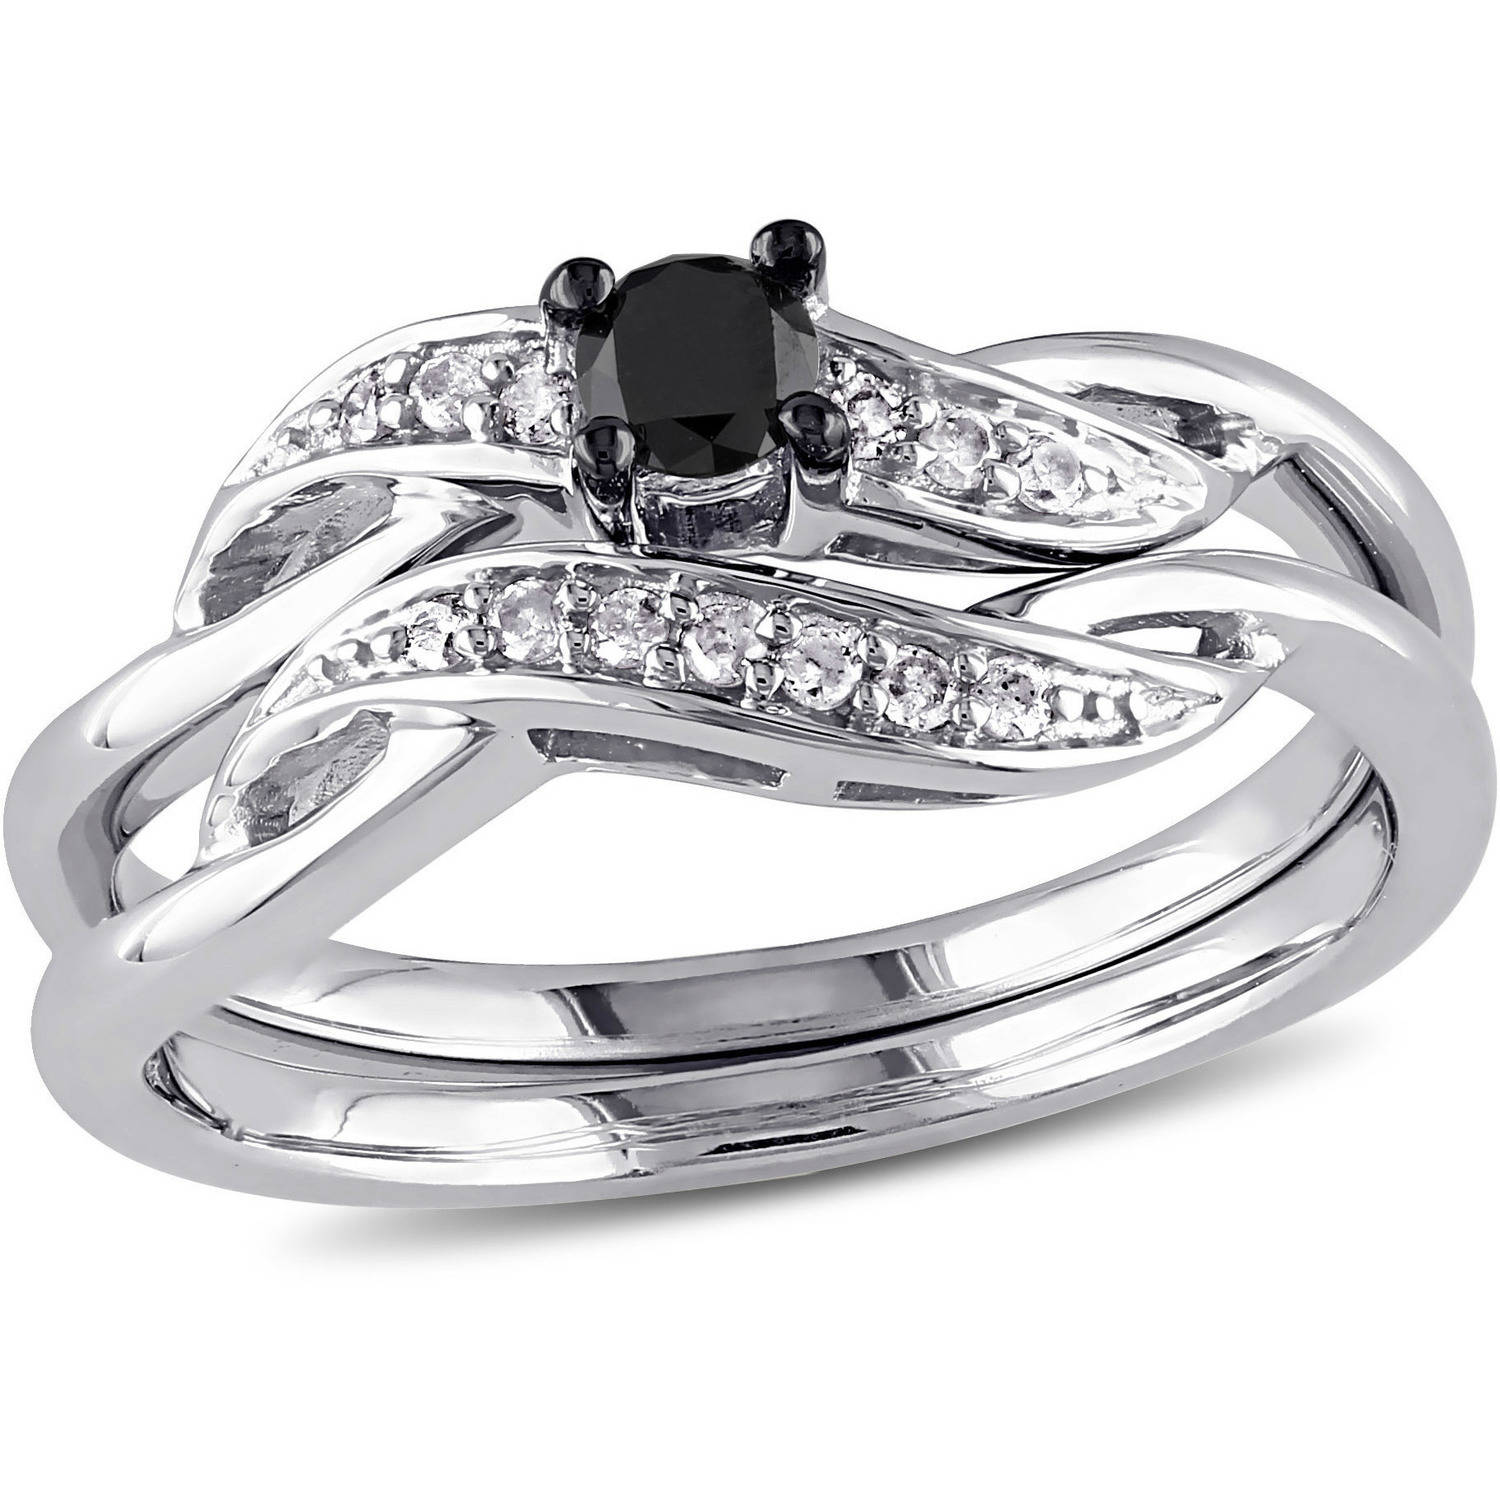 Asteria 1/4 Carat T.W. Black and White Diamond Sterling Silver Bridal Ring Set